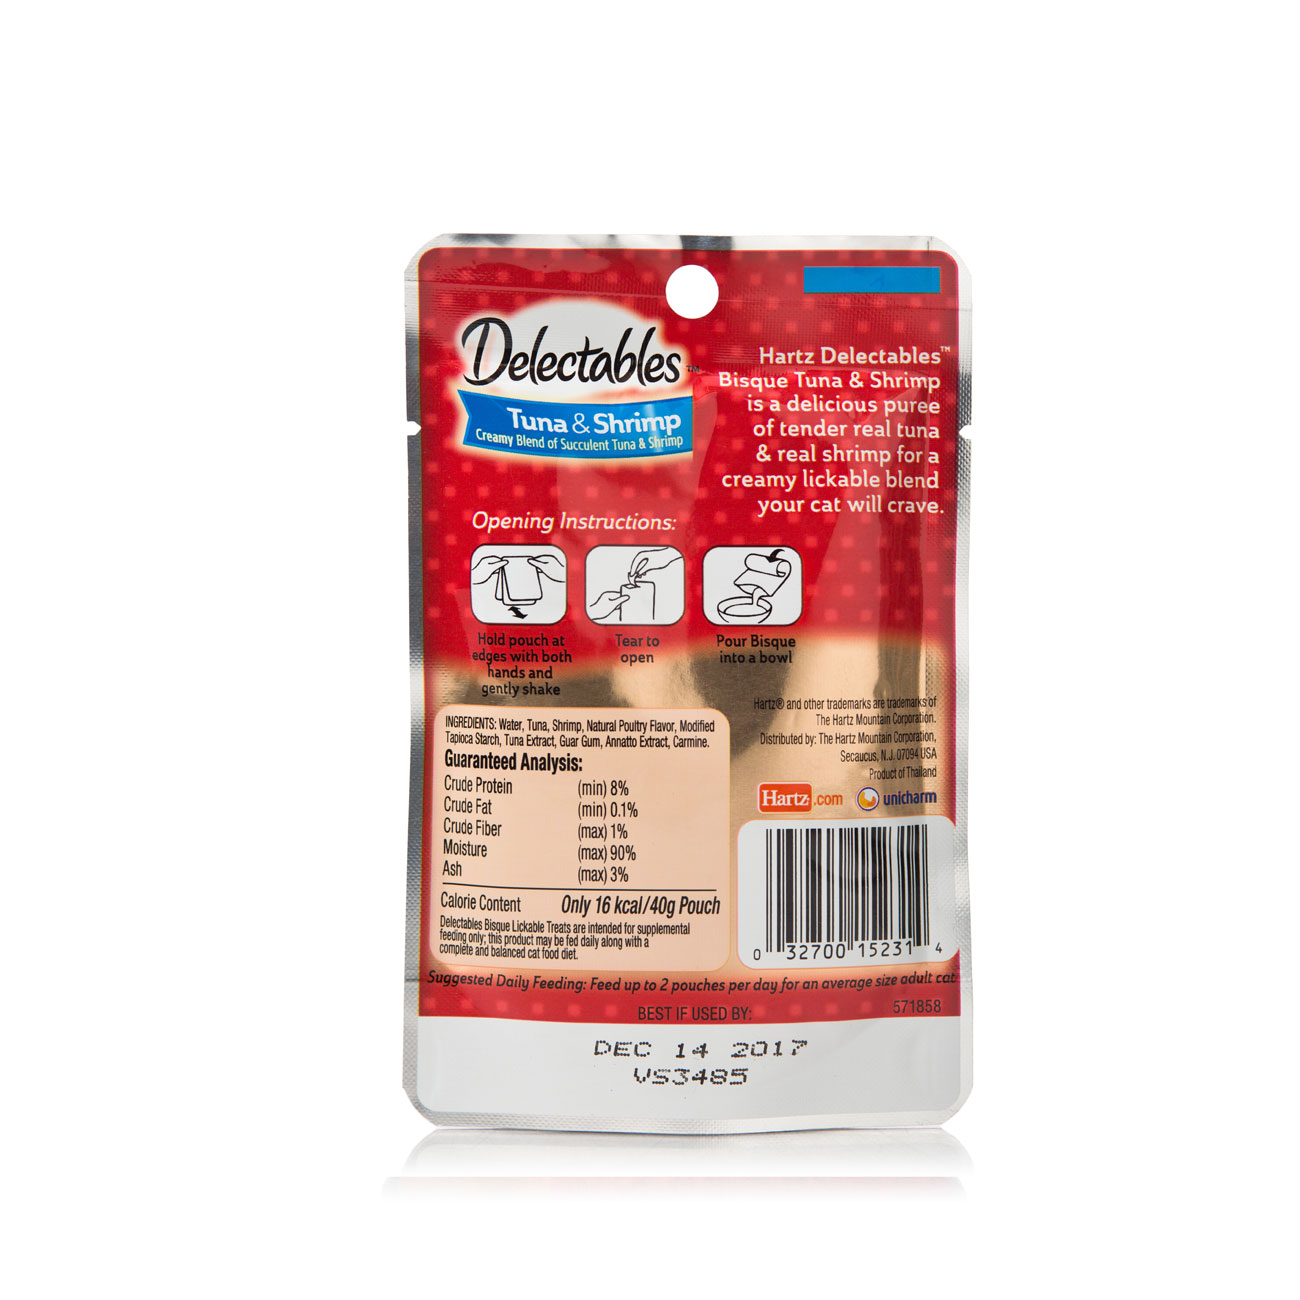 Hartz Delectables Lickable Treat for cats, back of package. Tuna and Shrimp Bisque.